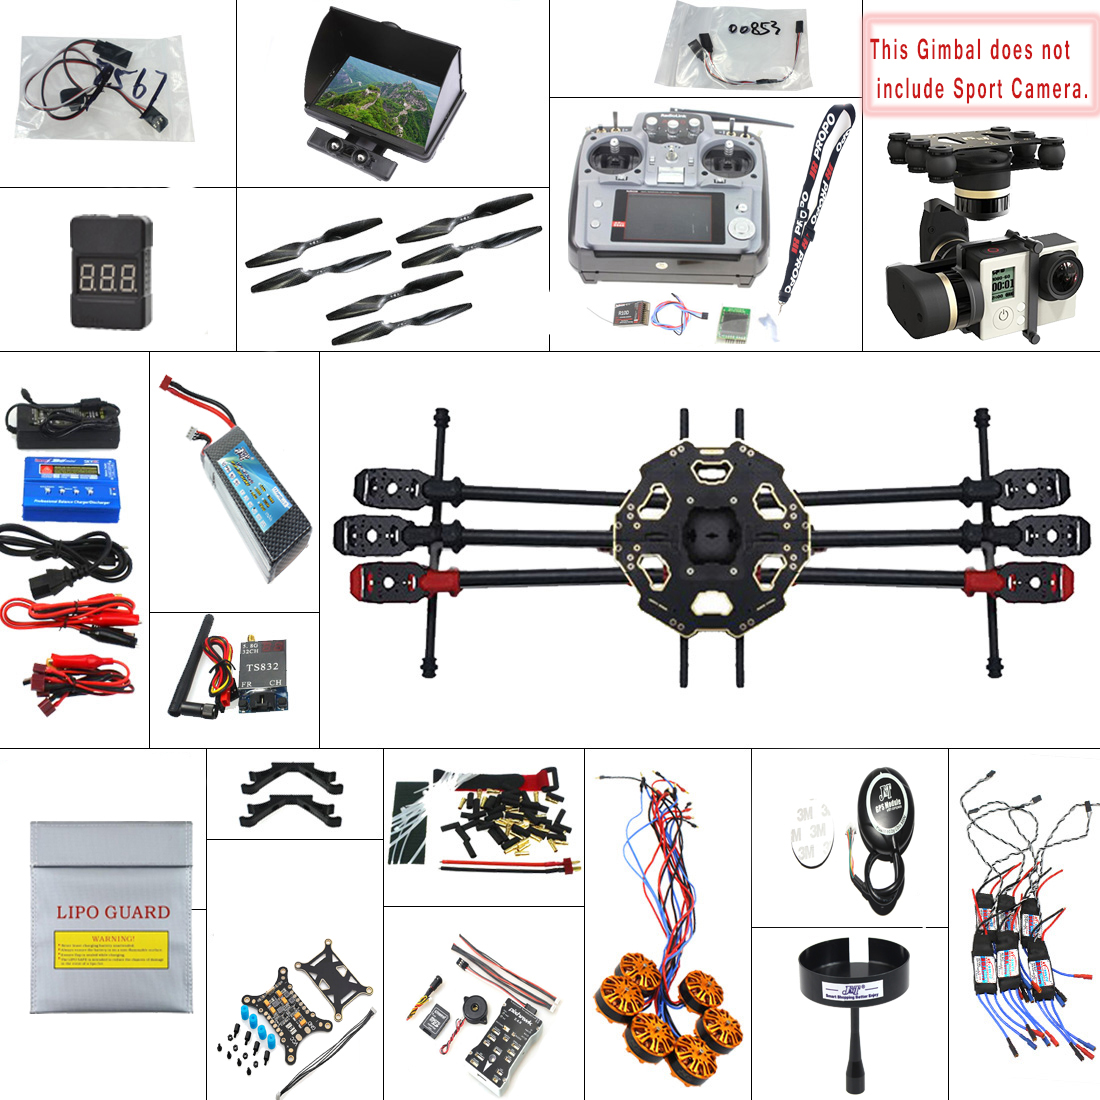 F07807-F JMT 680PRO PX4 GPS 2.4G 10CH 5.8G Video FPV RC Hexacopter Unassembled Full Kit RTF DIY RC Drone Combo MINI3D Pro Gimbal